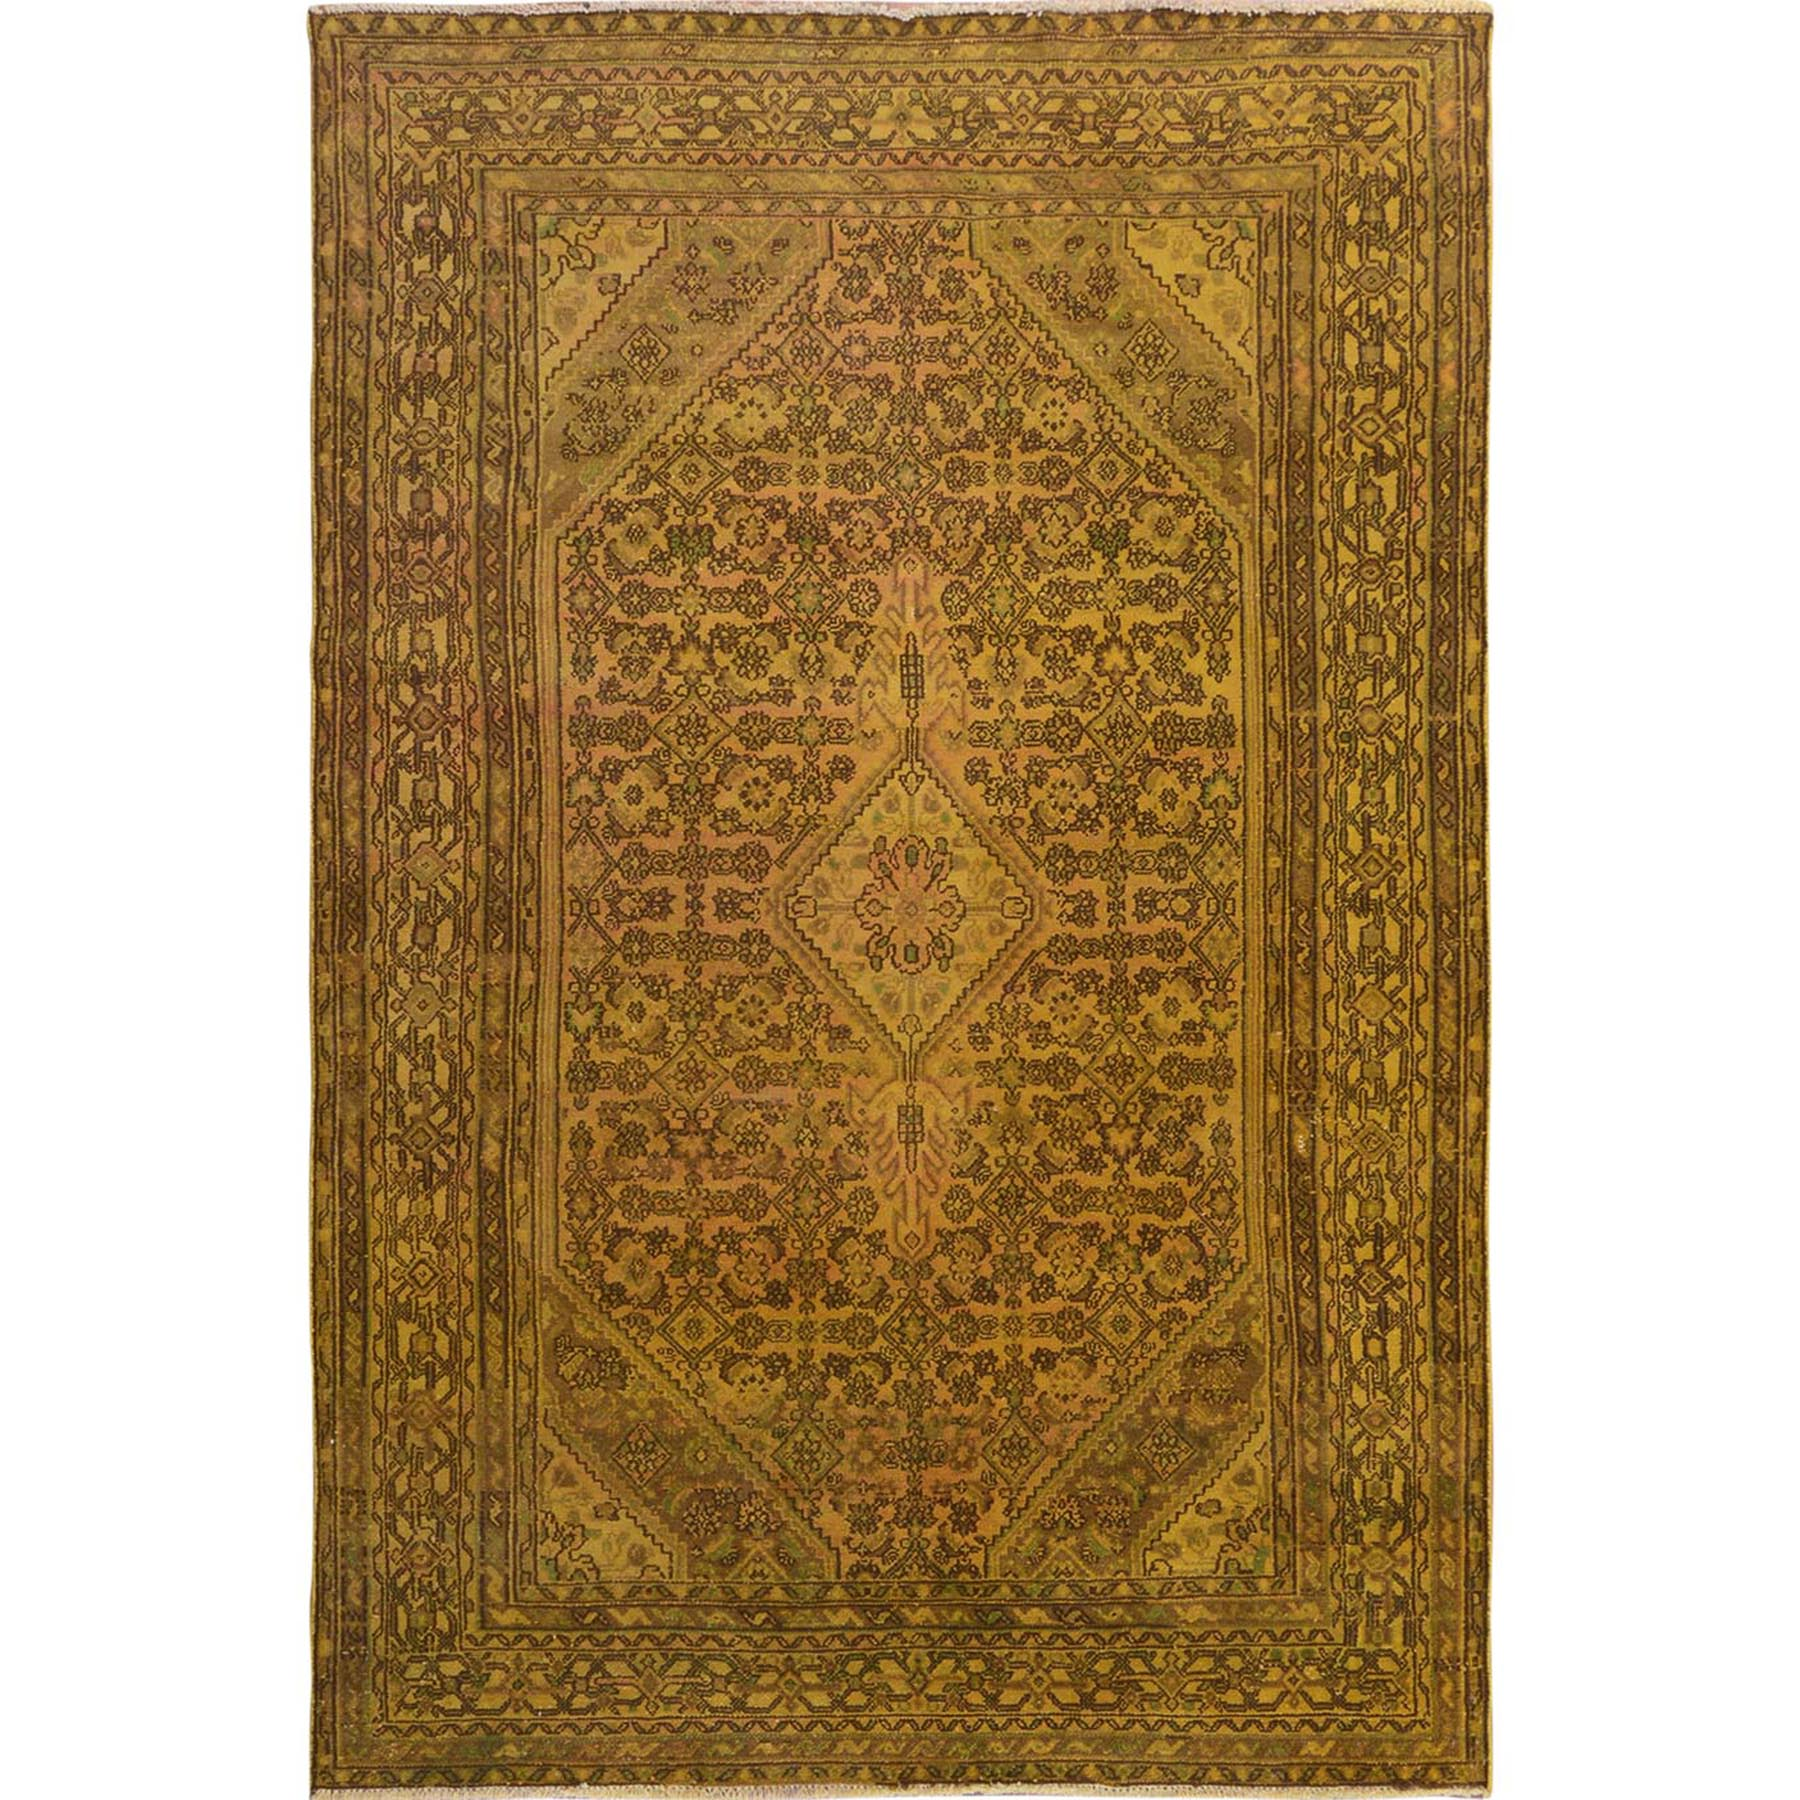 "6'10""x10'3"" Yellow Overdyed Vintage Bibikabad Persian Worn Down Hand Woven Pure Wool Oriental Rug"